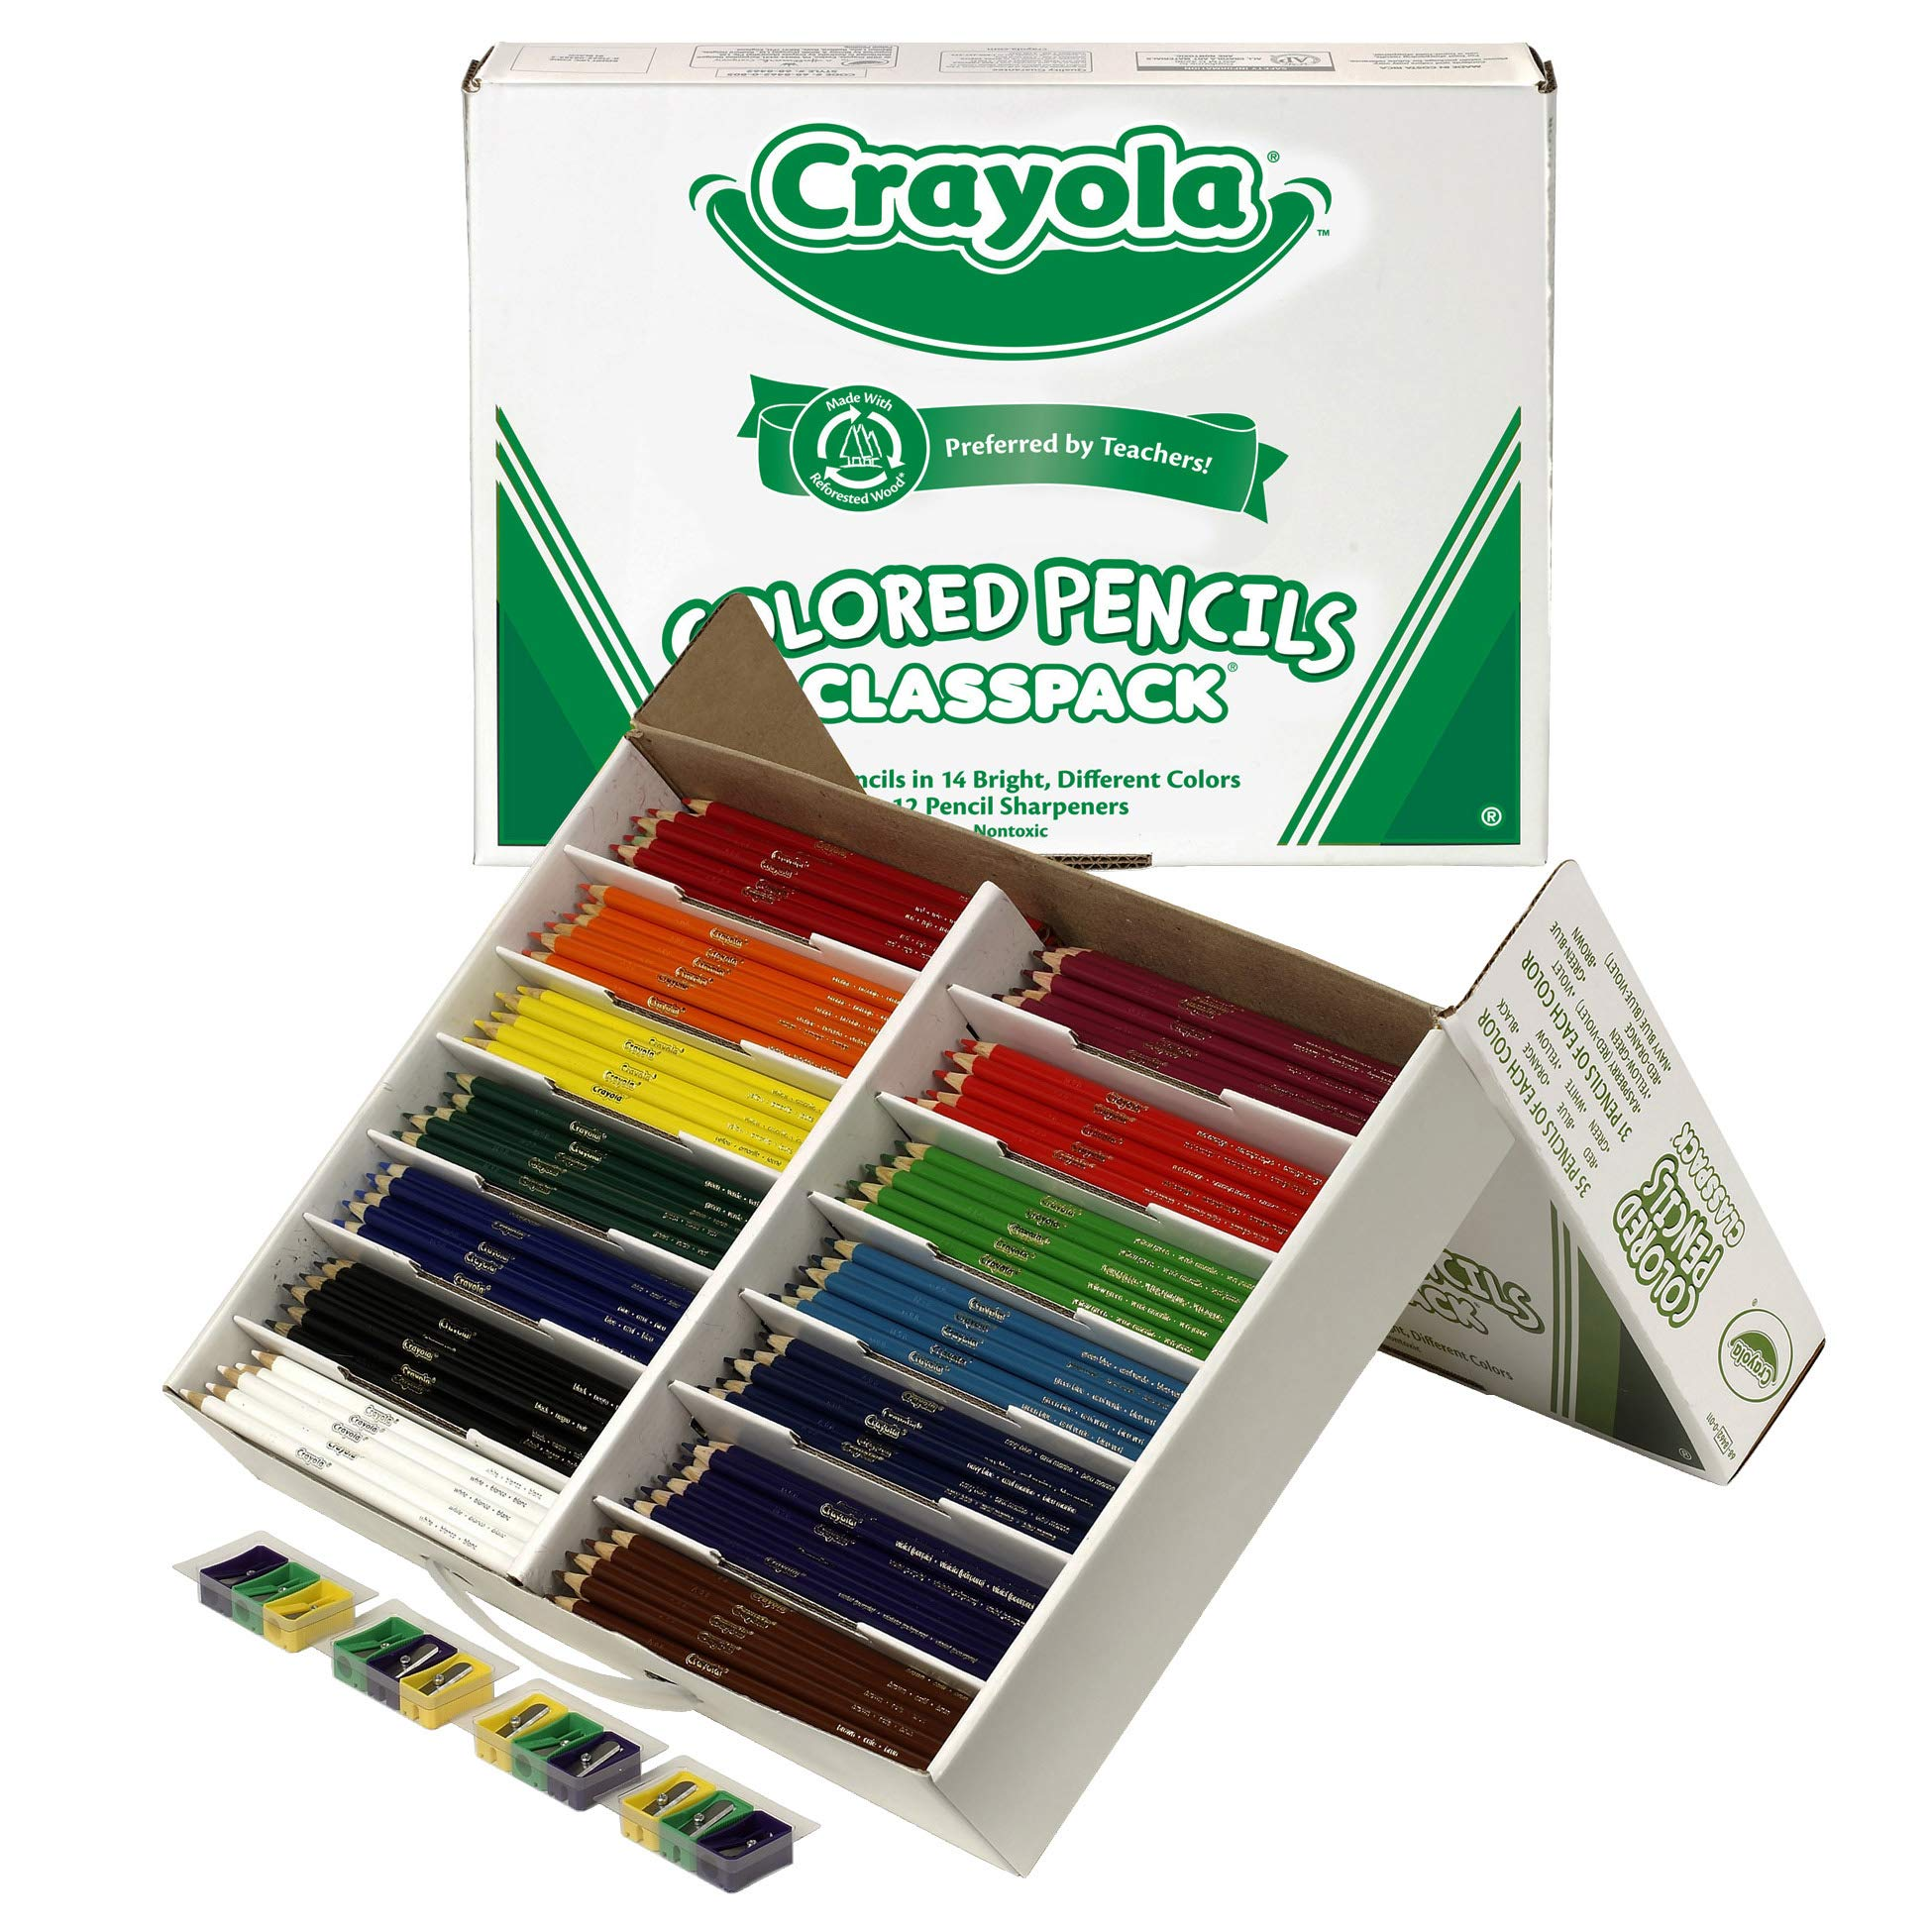 Crayola Colored Pencil Classpack, School Supplies, 14 Assorted Colors, 462 Count by Crayola